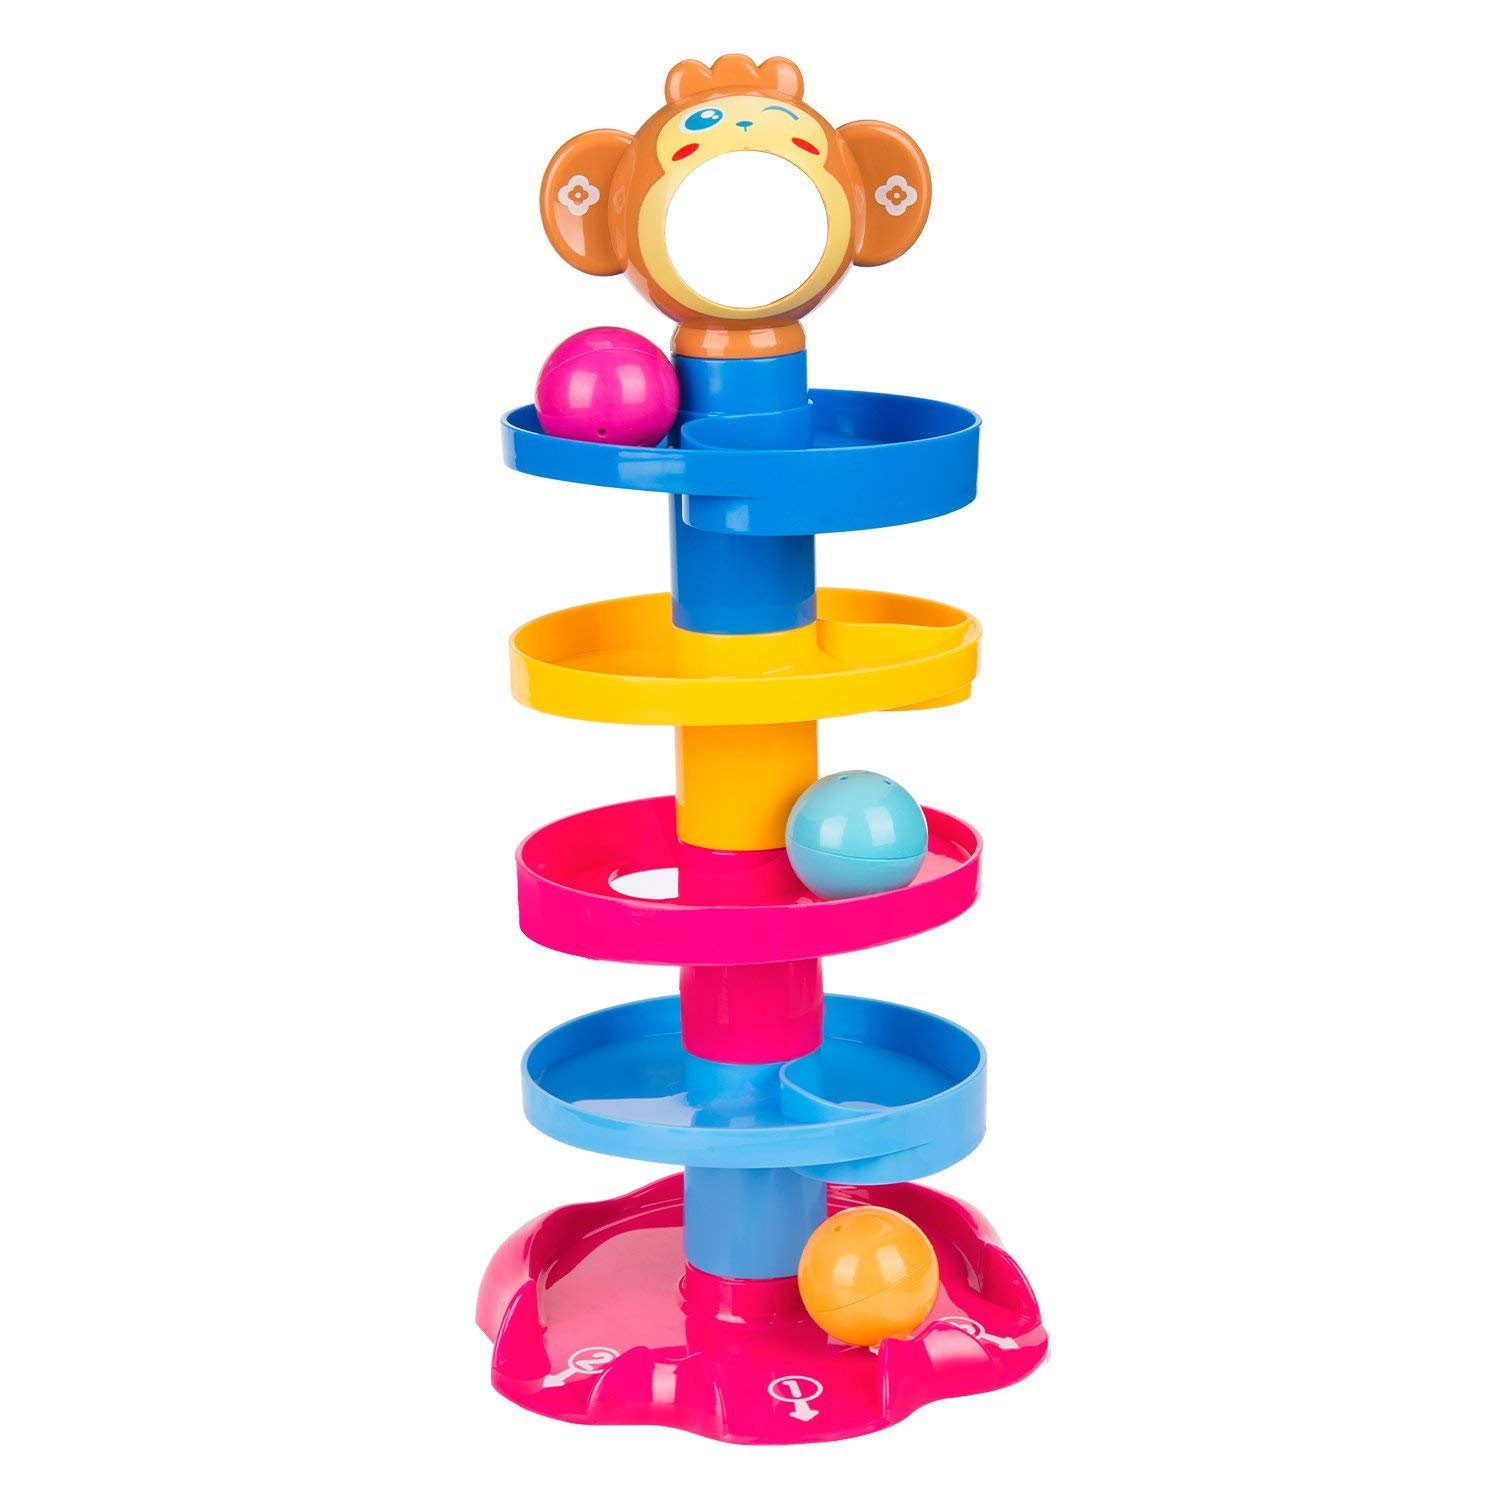 Elover Ball Drop Toys, Swirl Ball Ramp 5 Layer Tower Run includes 3 Colorful Balls with Bells Toy Set for Kids Toddlers Gifts